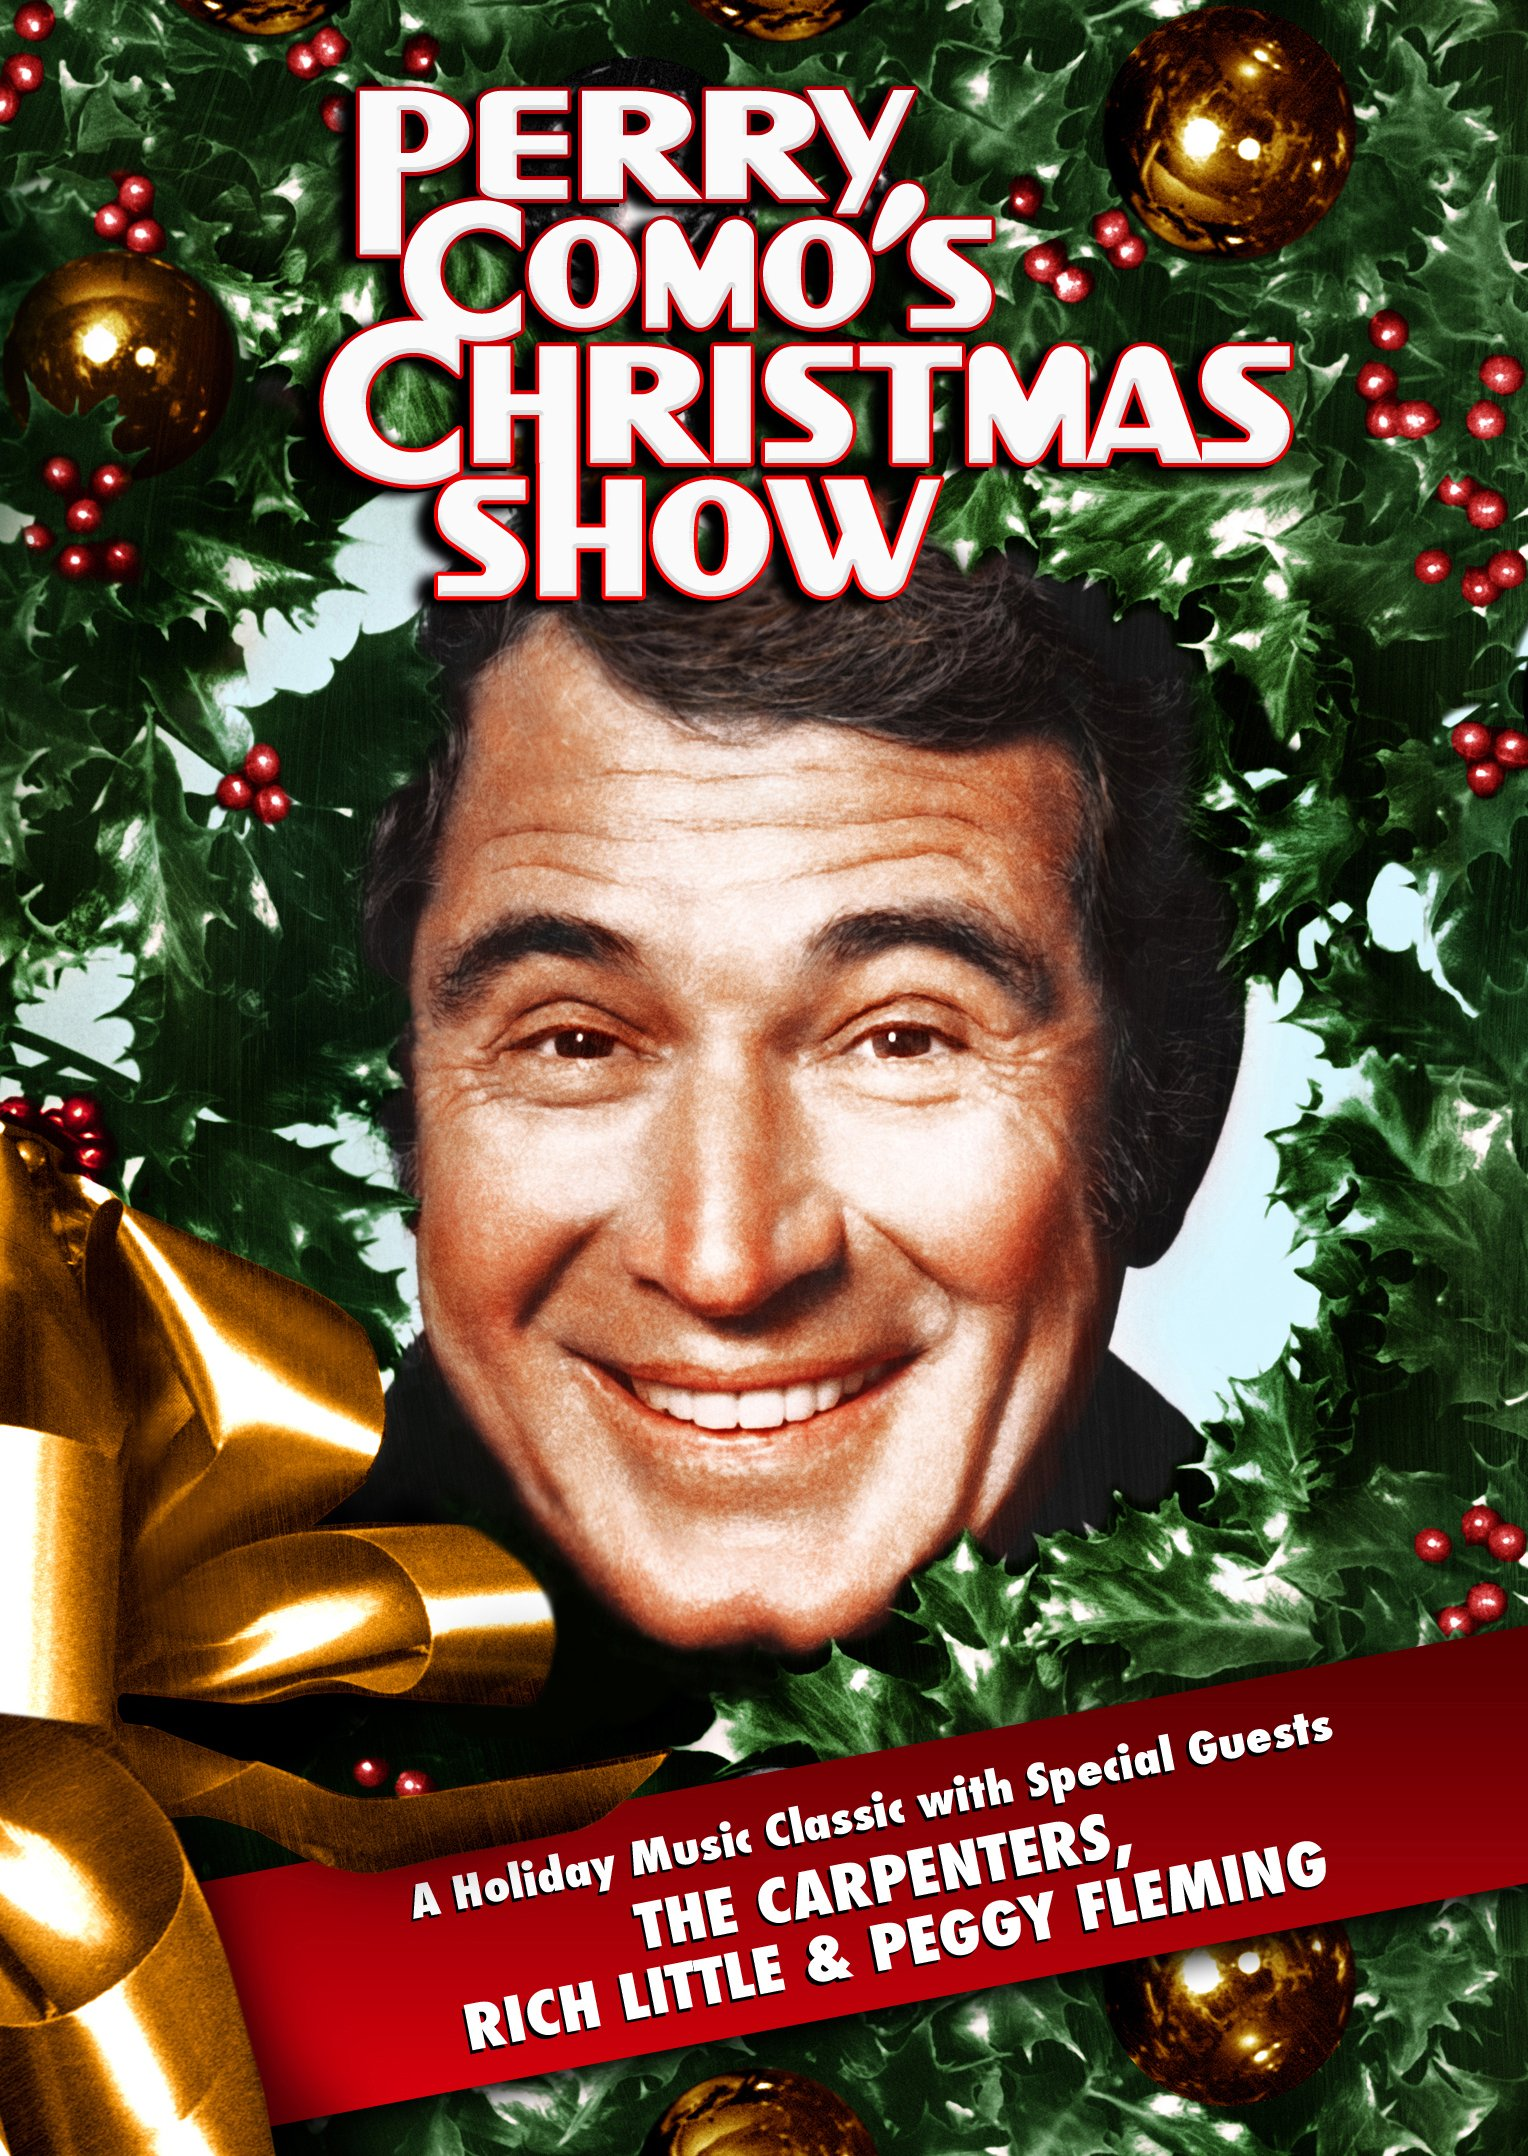 "PERRY COMO'S CHRISTMAS SHOW from 1974 represents the beloved crooner's decades-long association with holiday television specials that entertained tens of millions of viewers from the 1950s through the 1990s. Unseen anywhere since its one and only CBS-TV broadcast on December 17, 1974, PERRY COMO'S CHRISTMAS SHOW presents the host with special musical guests THE CARPENTERS along with Olympics skating star PEGGY FLEMMING and comedy great RICH LITTLE. Both PERRY COMO and THE CARPENTERS are embraced for their top-selling Christmas music and among the popular favorites featured on this colorful spectacular are ""Have Yourself A Merry Little Christmas"" (Como), ""Toyland"" (Como), ""Santa Claus Is Coming To Town"" (The Carpenters), ""Sleep Well Little Children"" (Como & Karen Carpenter) and ""Carol Of The Bells"" (Richard Carpenter). Additionally, Perry and The Carpenters team for a medley of each other's million-selling hits, including ""Close To You,"" ""It's Impossible,"" ""Yesterday Once More,"" ""And I Love You So"" and ""We've Only Just Begun. Peggy Fleming performs a beautifully choreographed ice skating production of ""The Christmas Waltz"" and the entire cast join together for ""It's Beginning To Look A Lot Like Christmas"" in a scene that recreates the Currier & Ives style Christmases of old."